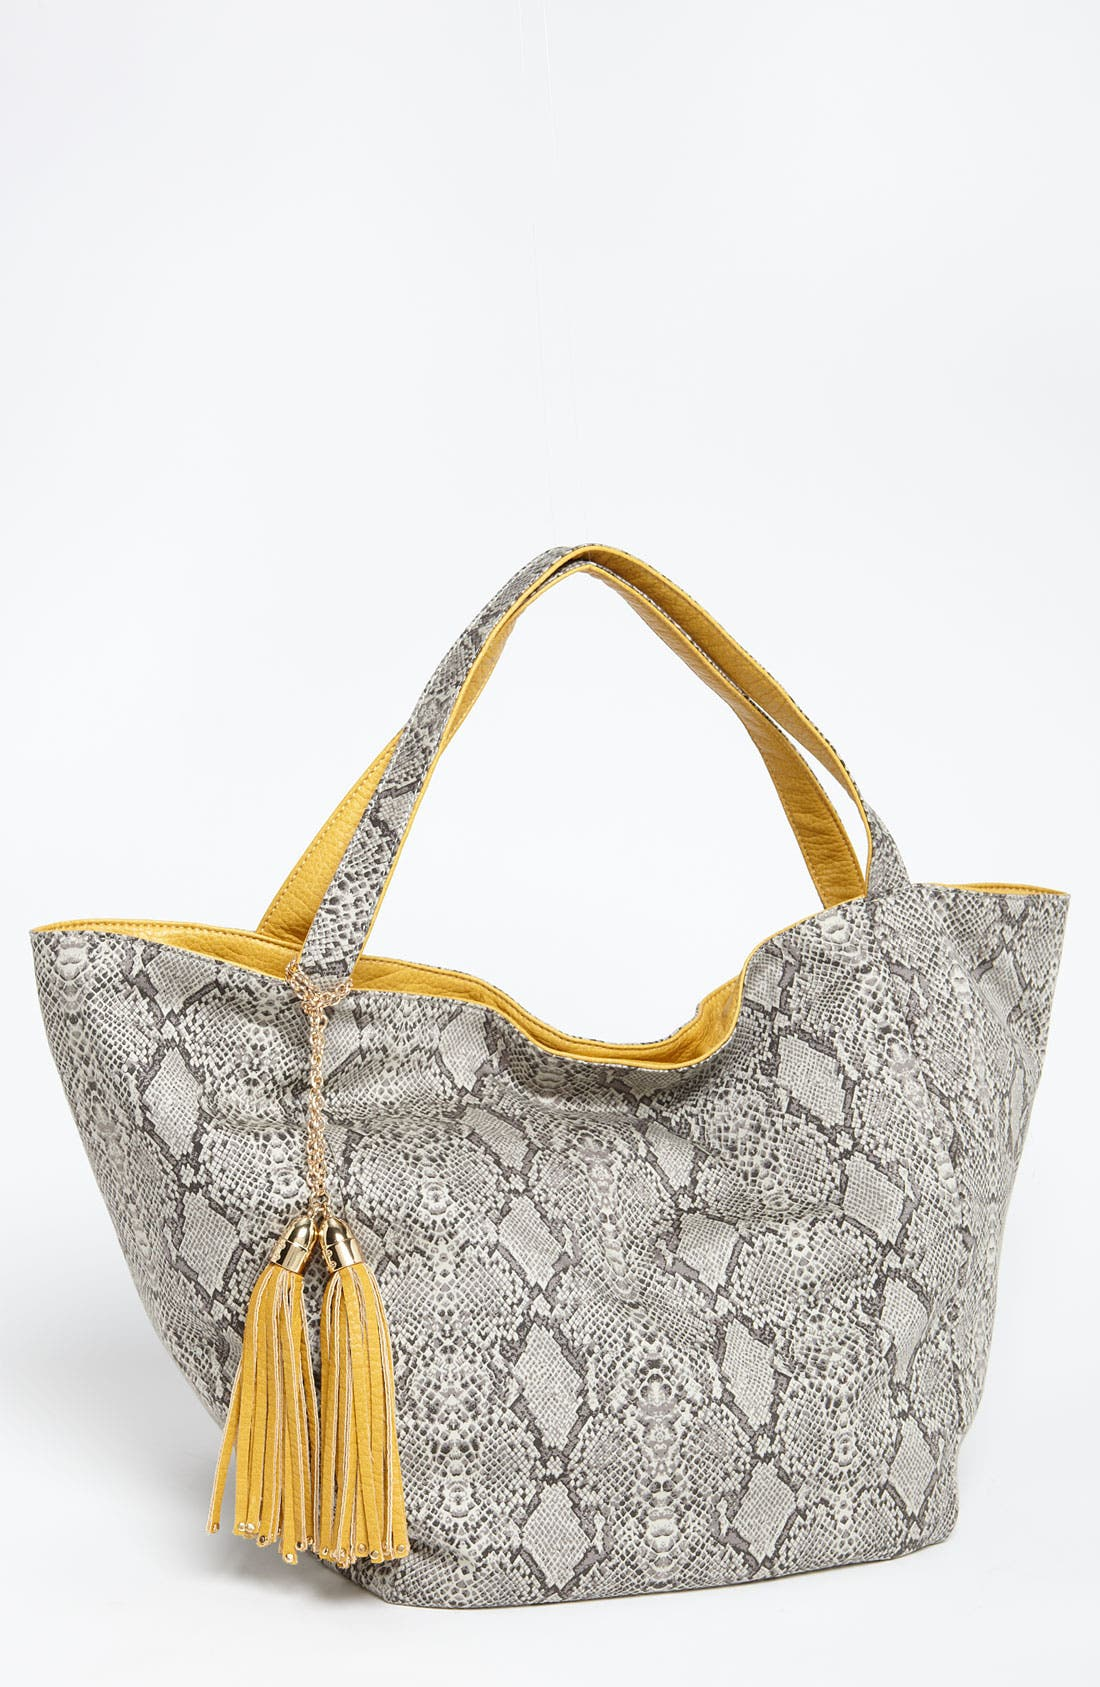 Main Image - Deux Lux 'Juno' Faux Leather Tote